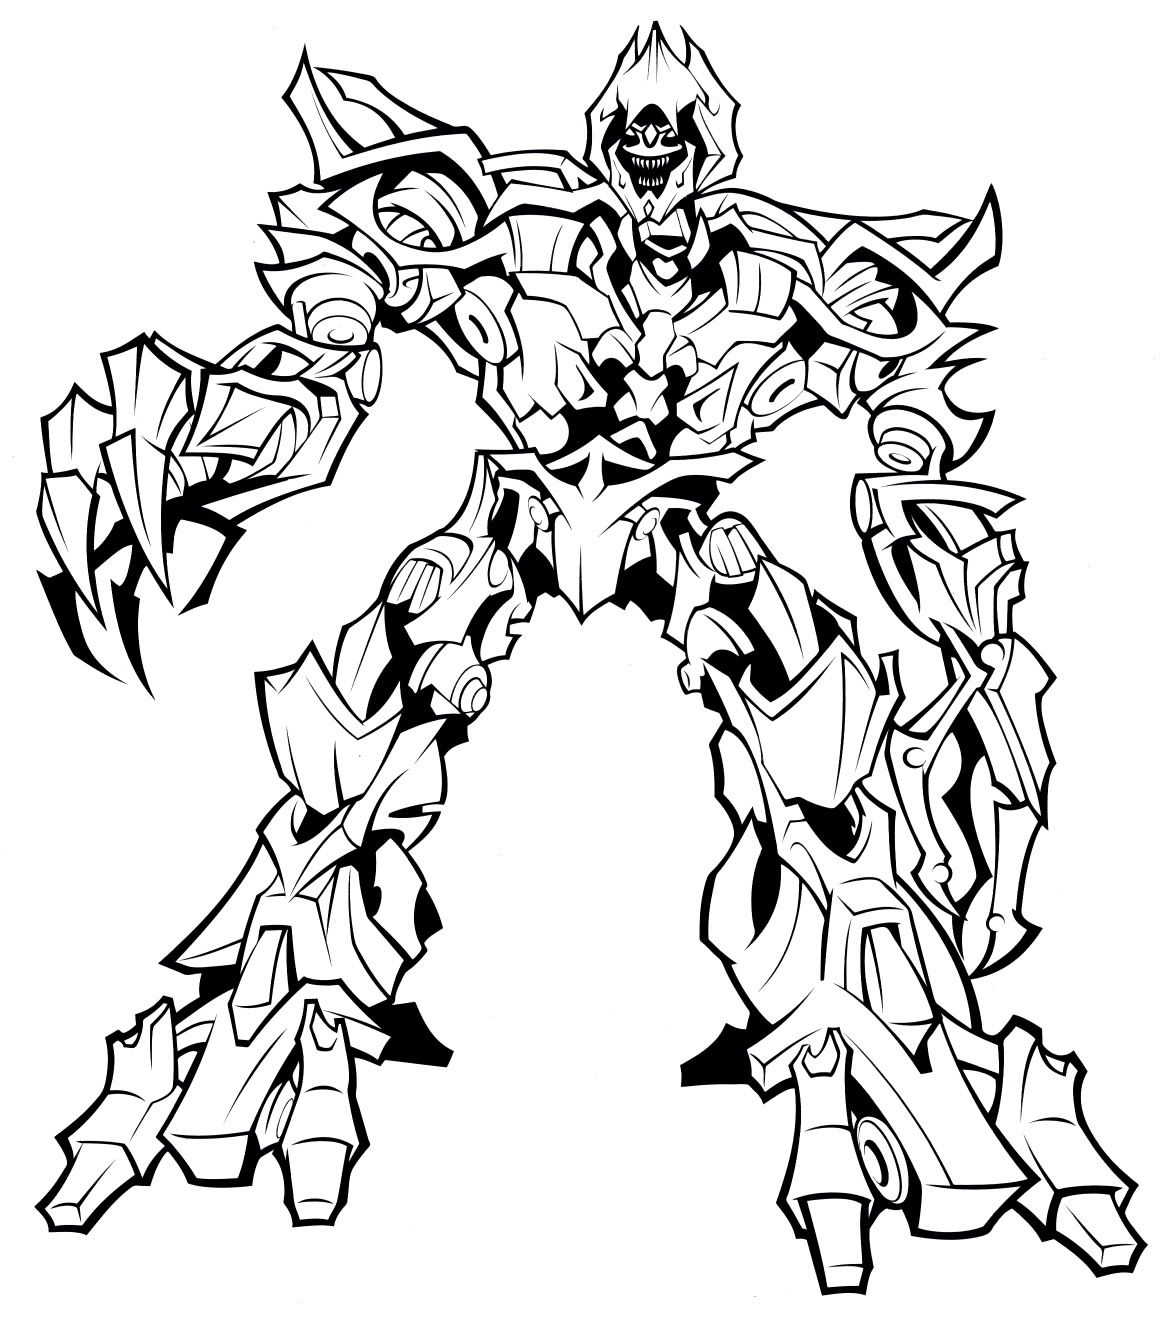 Megatron Coloring Pages Best Coloring Pages For Kids In 2020 Transformers Coloring Pages Toy Story Coloring Pages Pokemon Coloring Pages